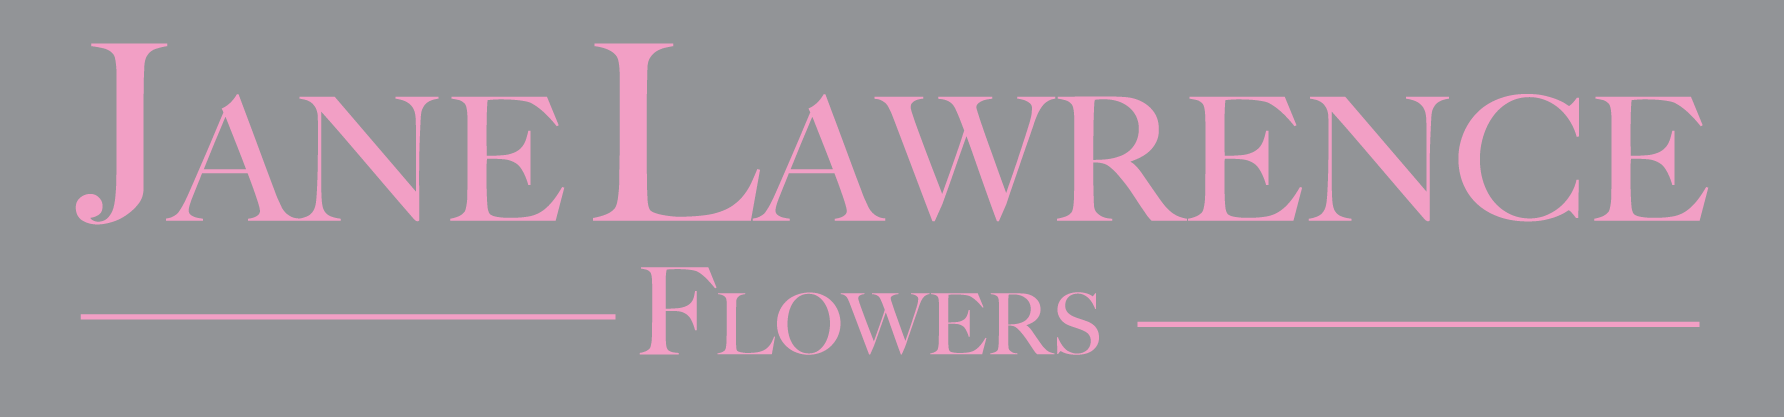 Jane Lawrence Flowers